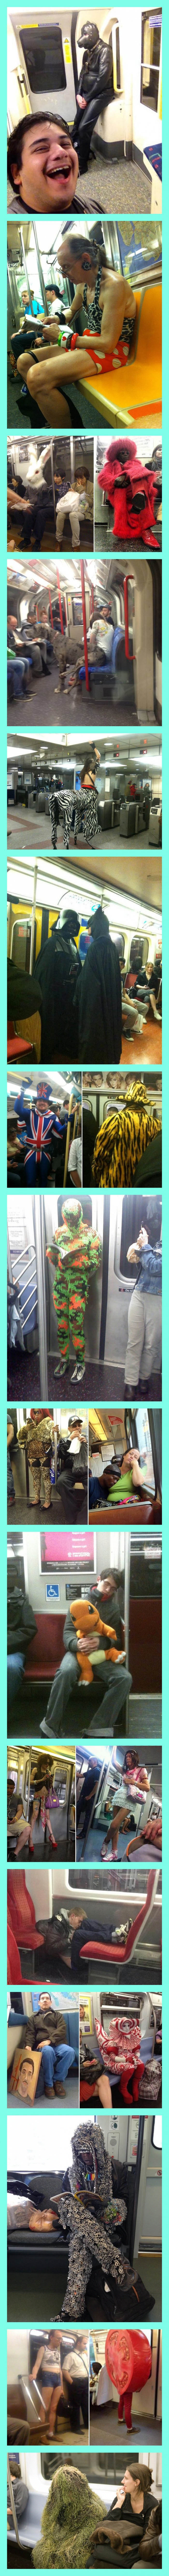 the best and worst of public transit, lol, wtf